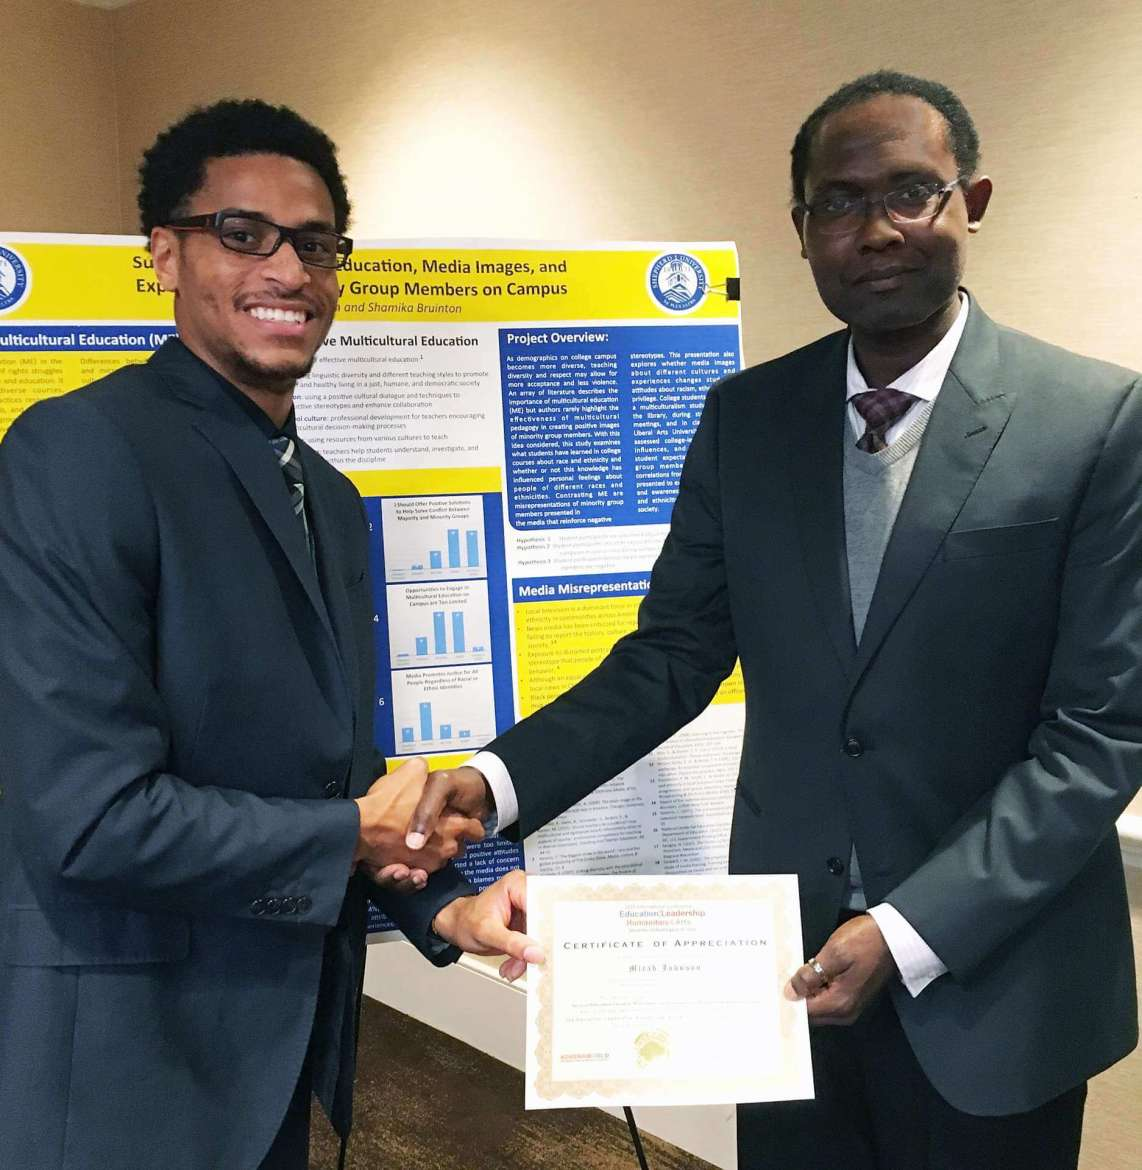 a development and administration master's major from Austin, Texas, (left) receives a certificate of appreciation from Eric Schwartz, executive director of Advena World LLC, for research he presented at the Advena World International Conference December 9 in Washington, D.C.